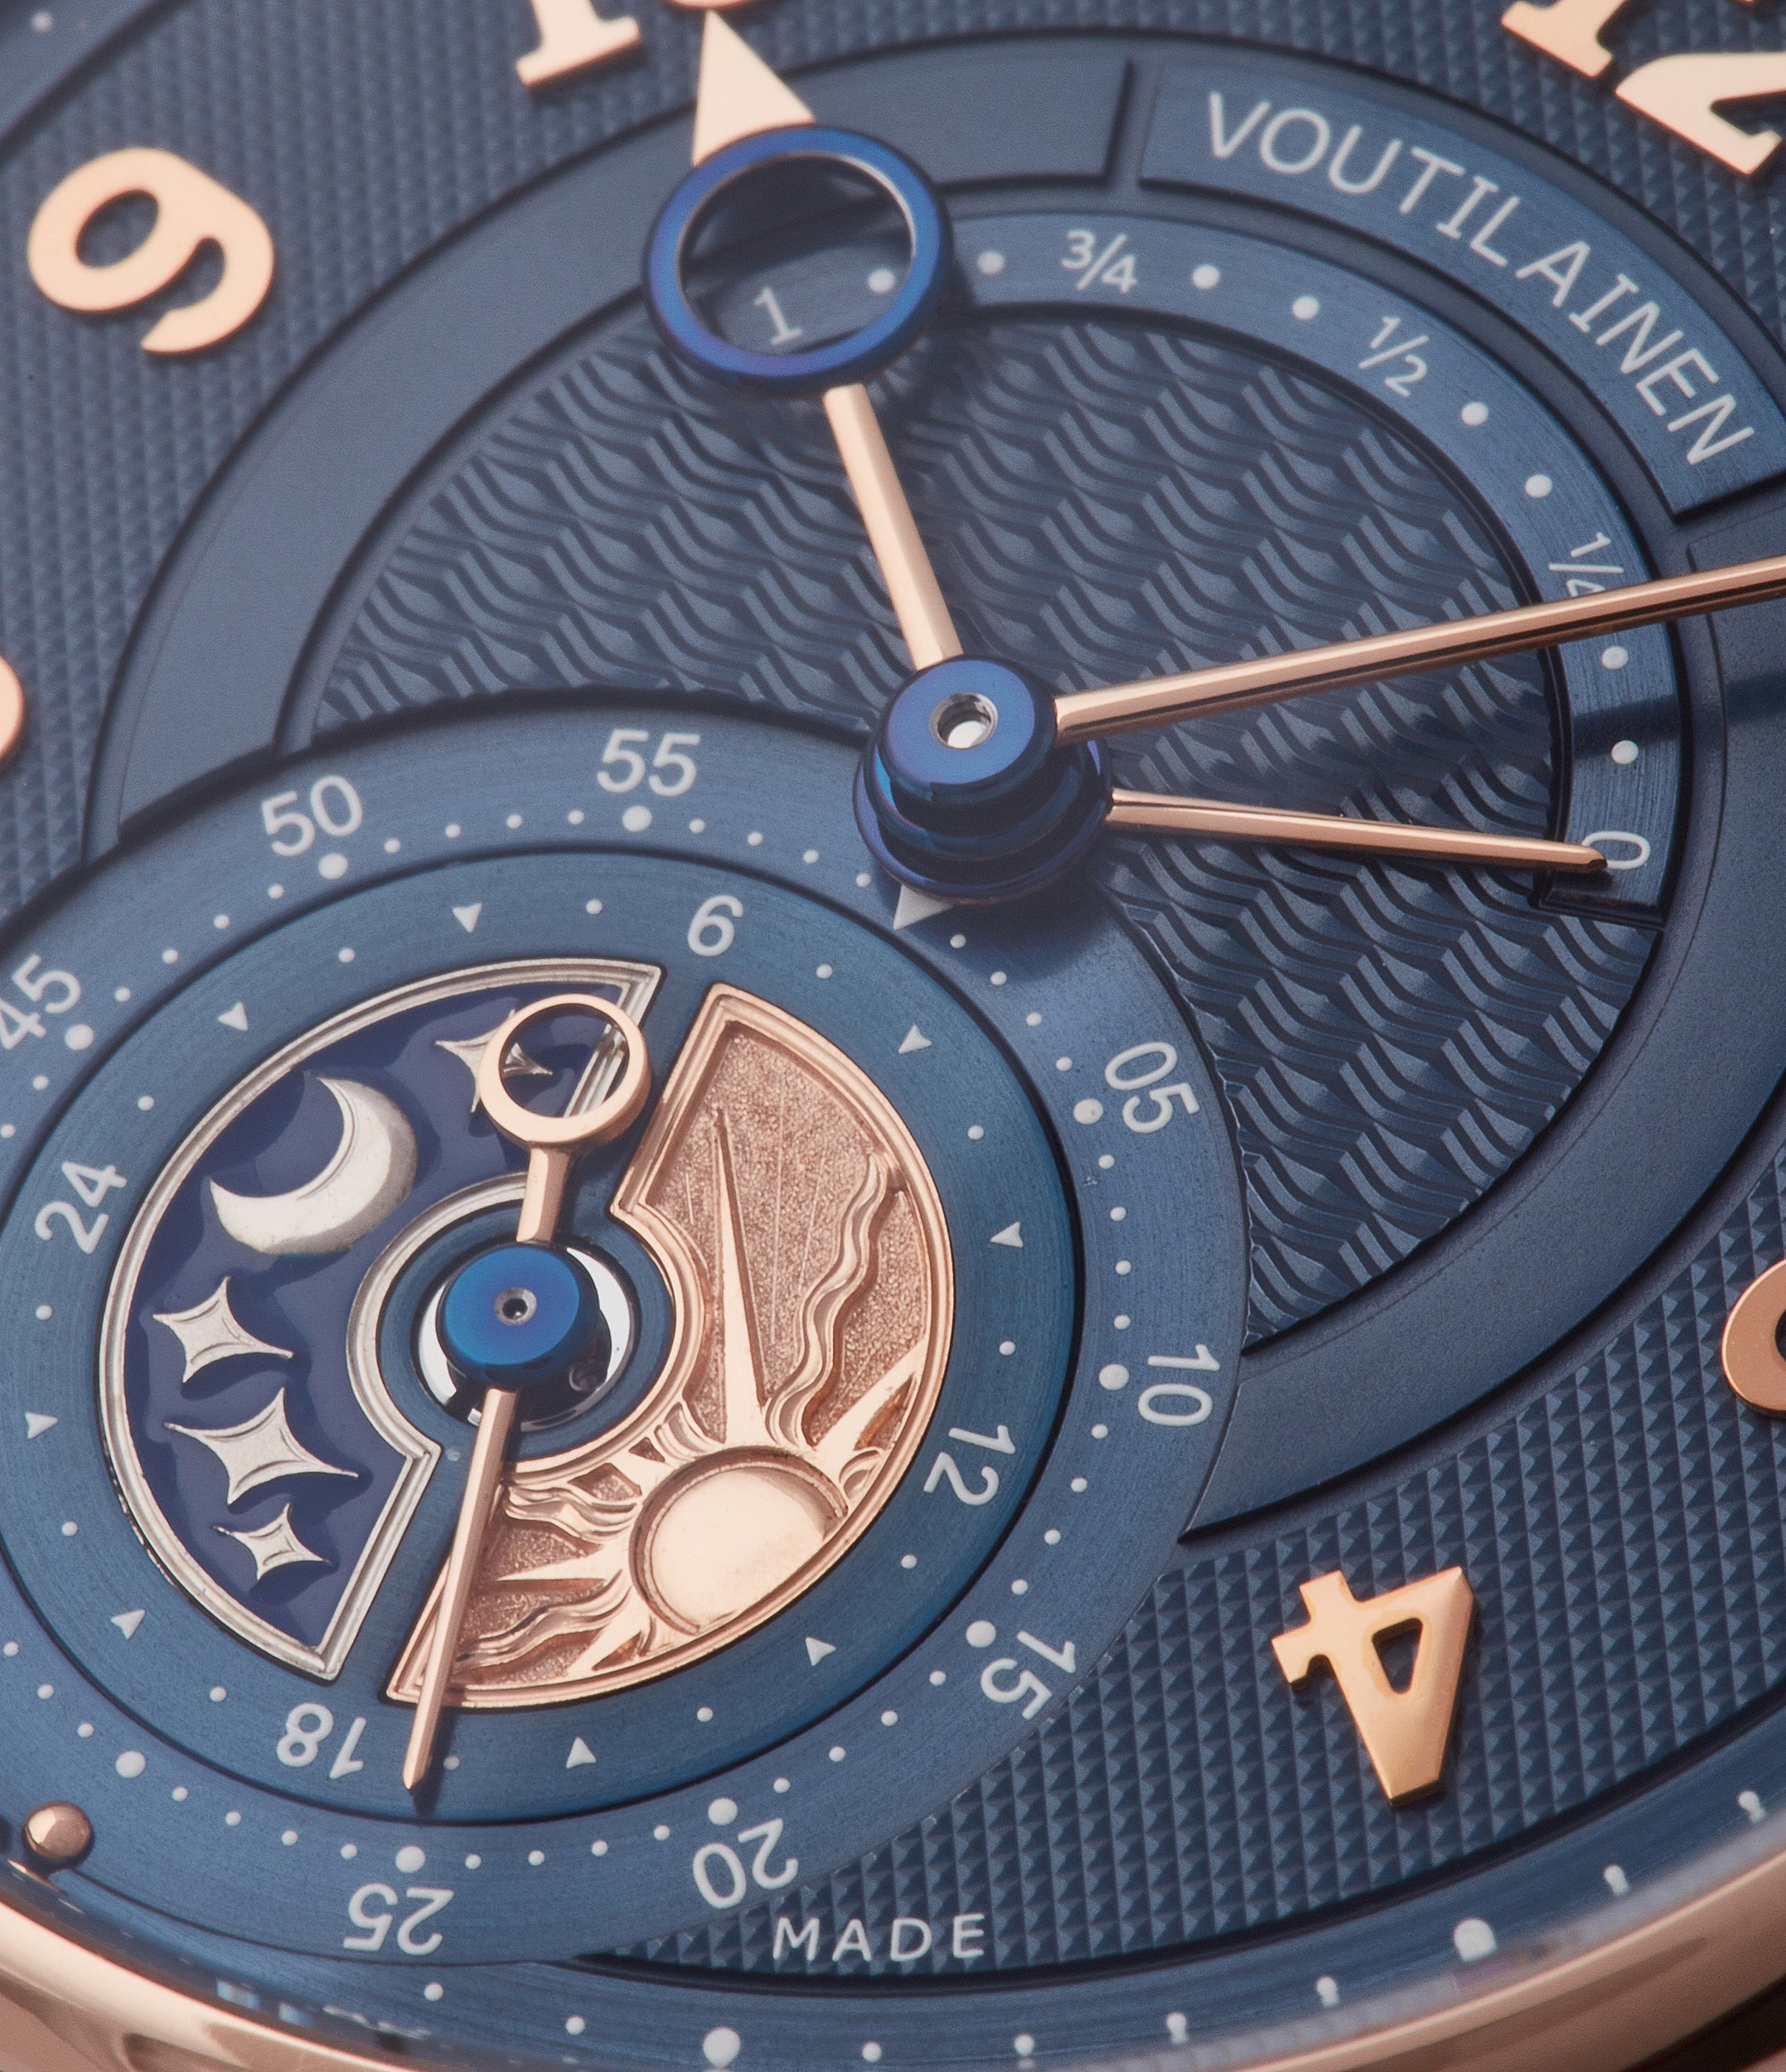 blue guilloche dial Voutilainen GMT power reserve rose gold dress watch blue dial for sale online at A Collected Man London UK specialist of rare watches